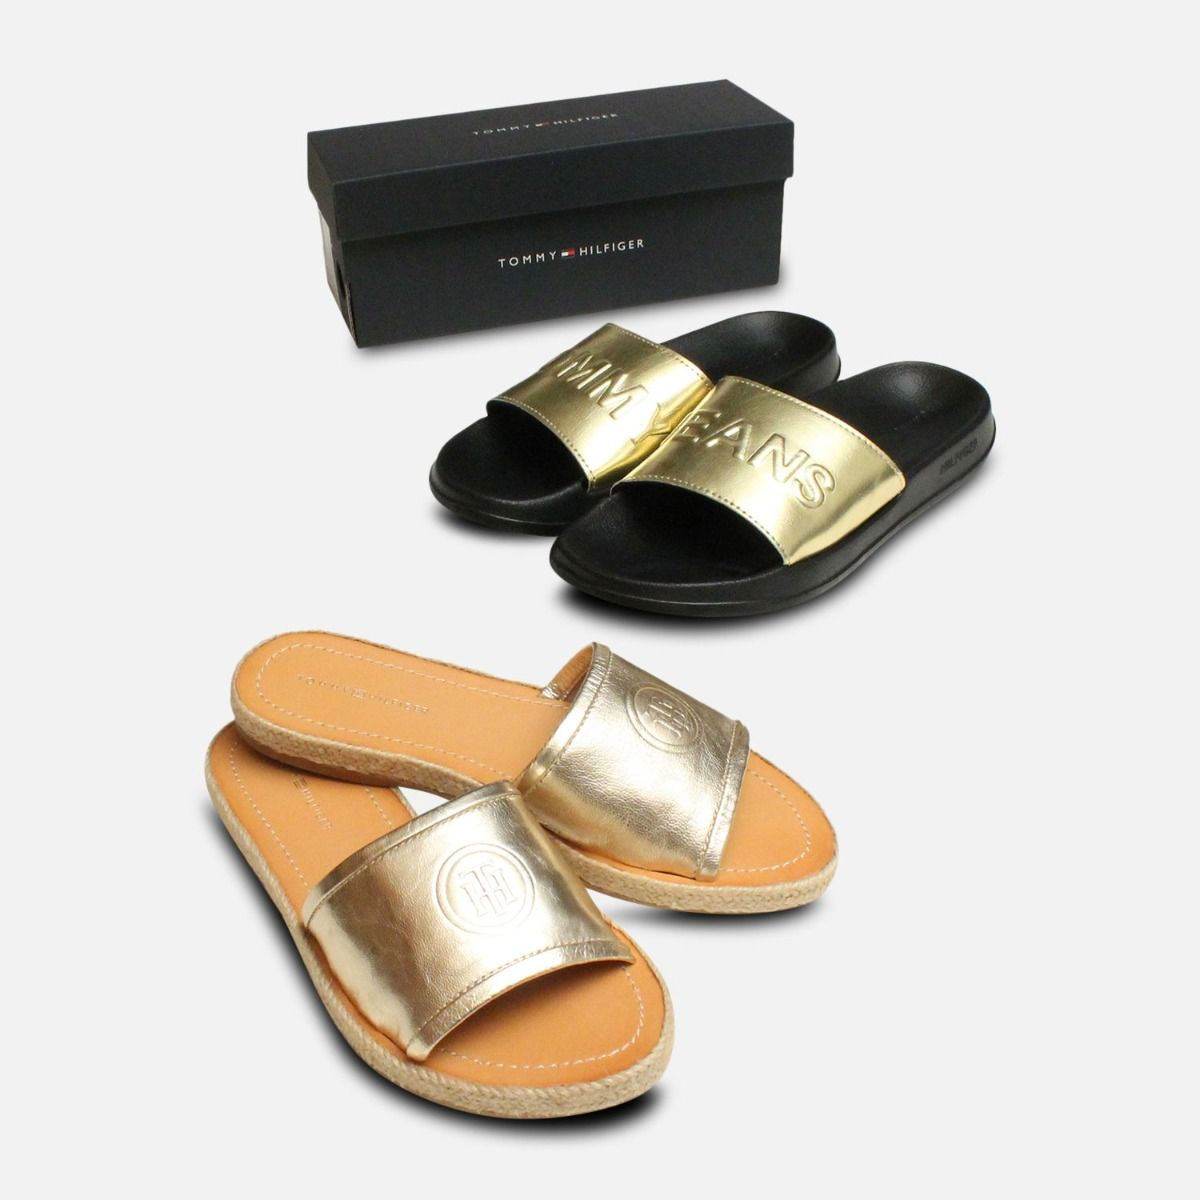 Metallic Gold Leather Tommy Hilfiger Flat Mule Sandal